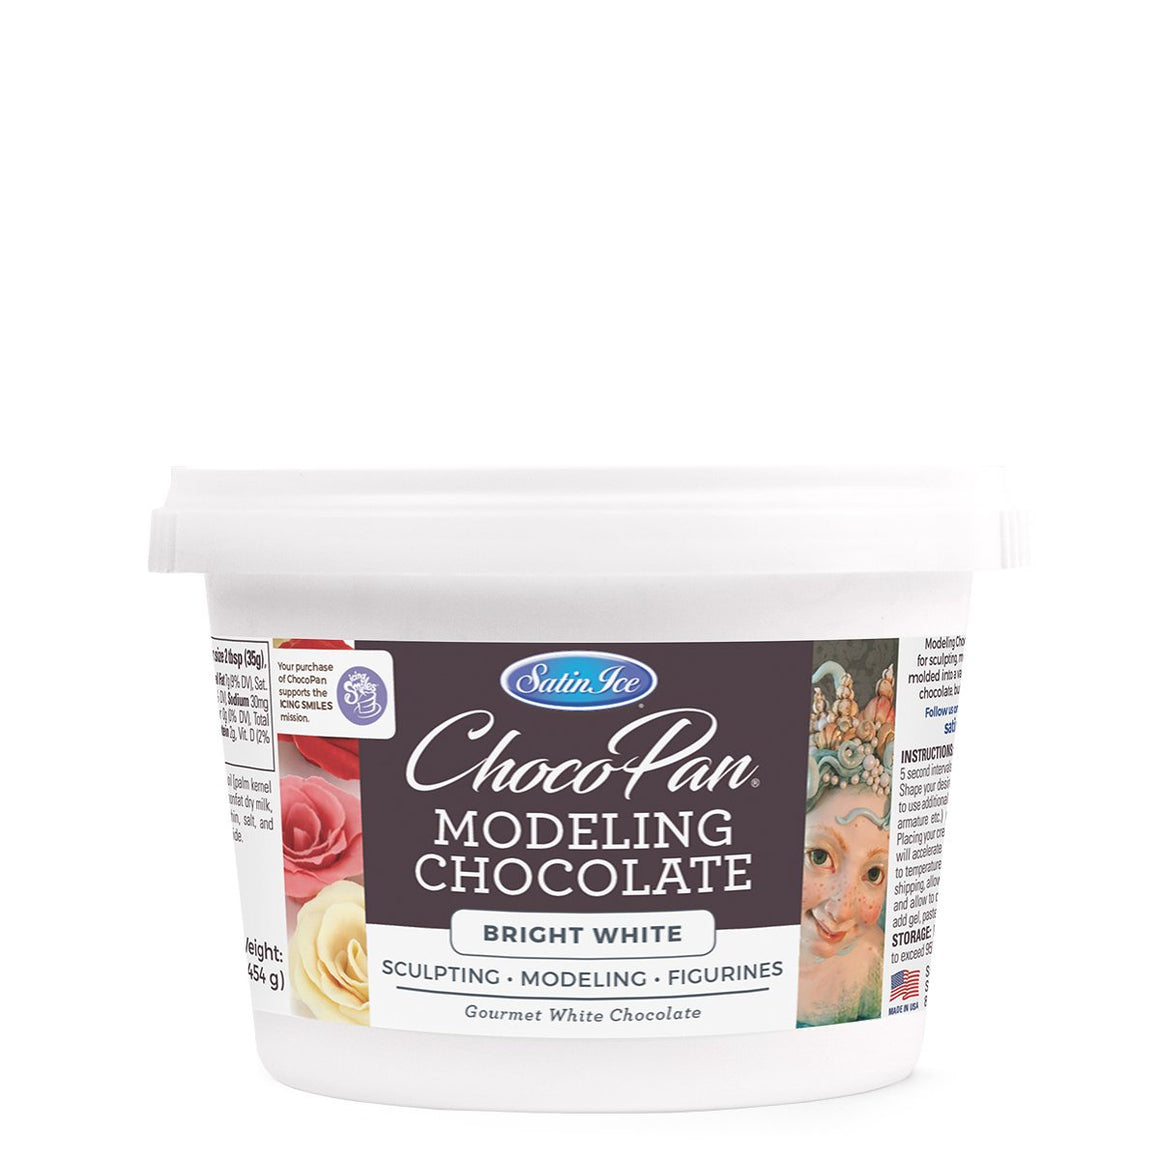 Choco-Pan Modeling Chocolate - Bright White - 1lb